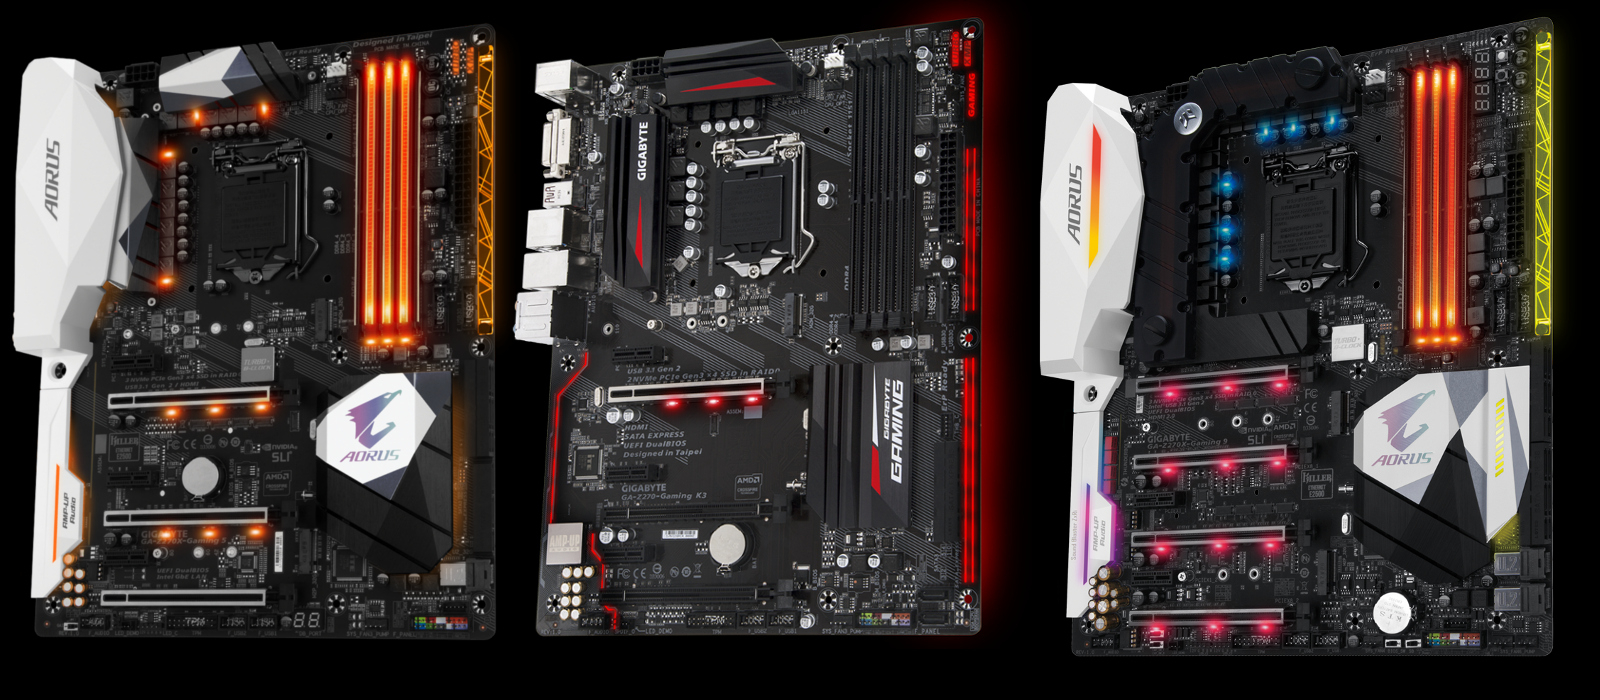 Obsession for lighting on all parts of the board - the Z270X-Gaming 9, the Z270-Gaming K3 and the Z270X-Gaming 5. Click to increase